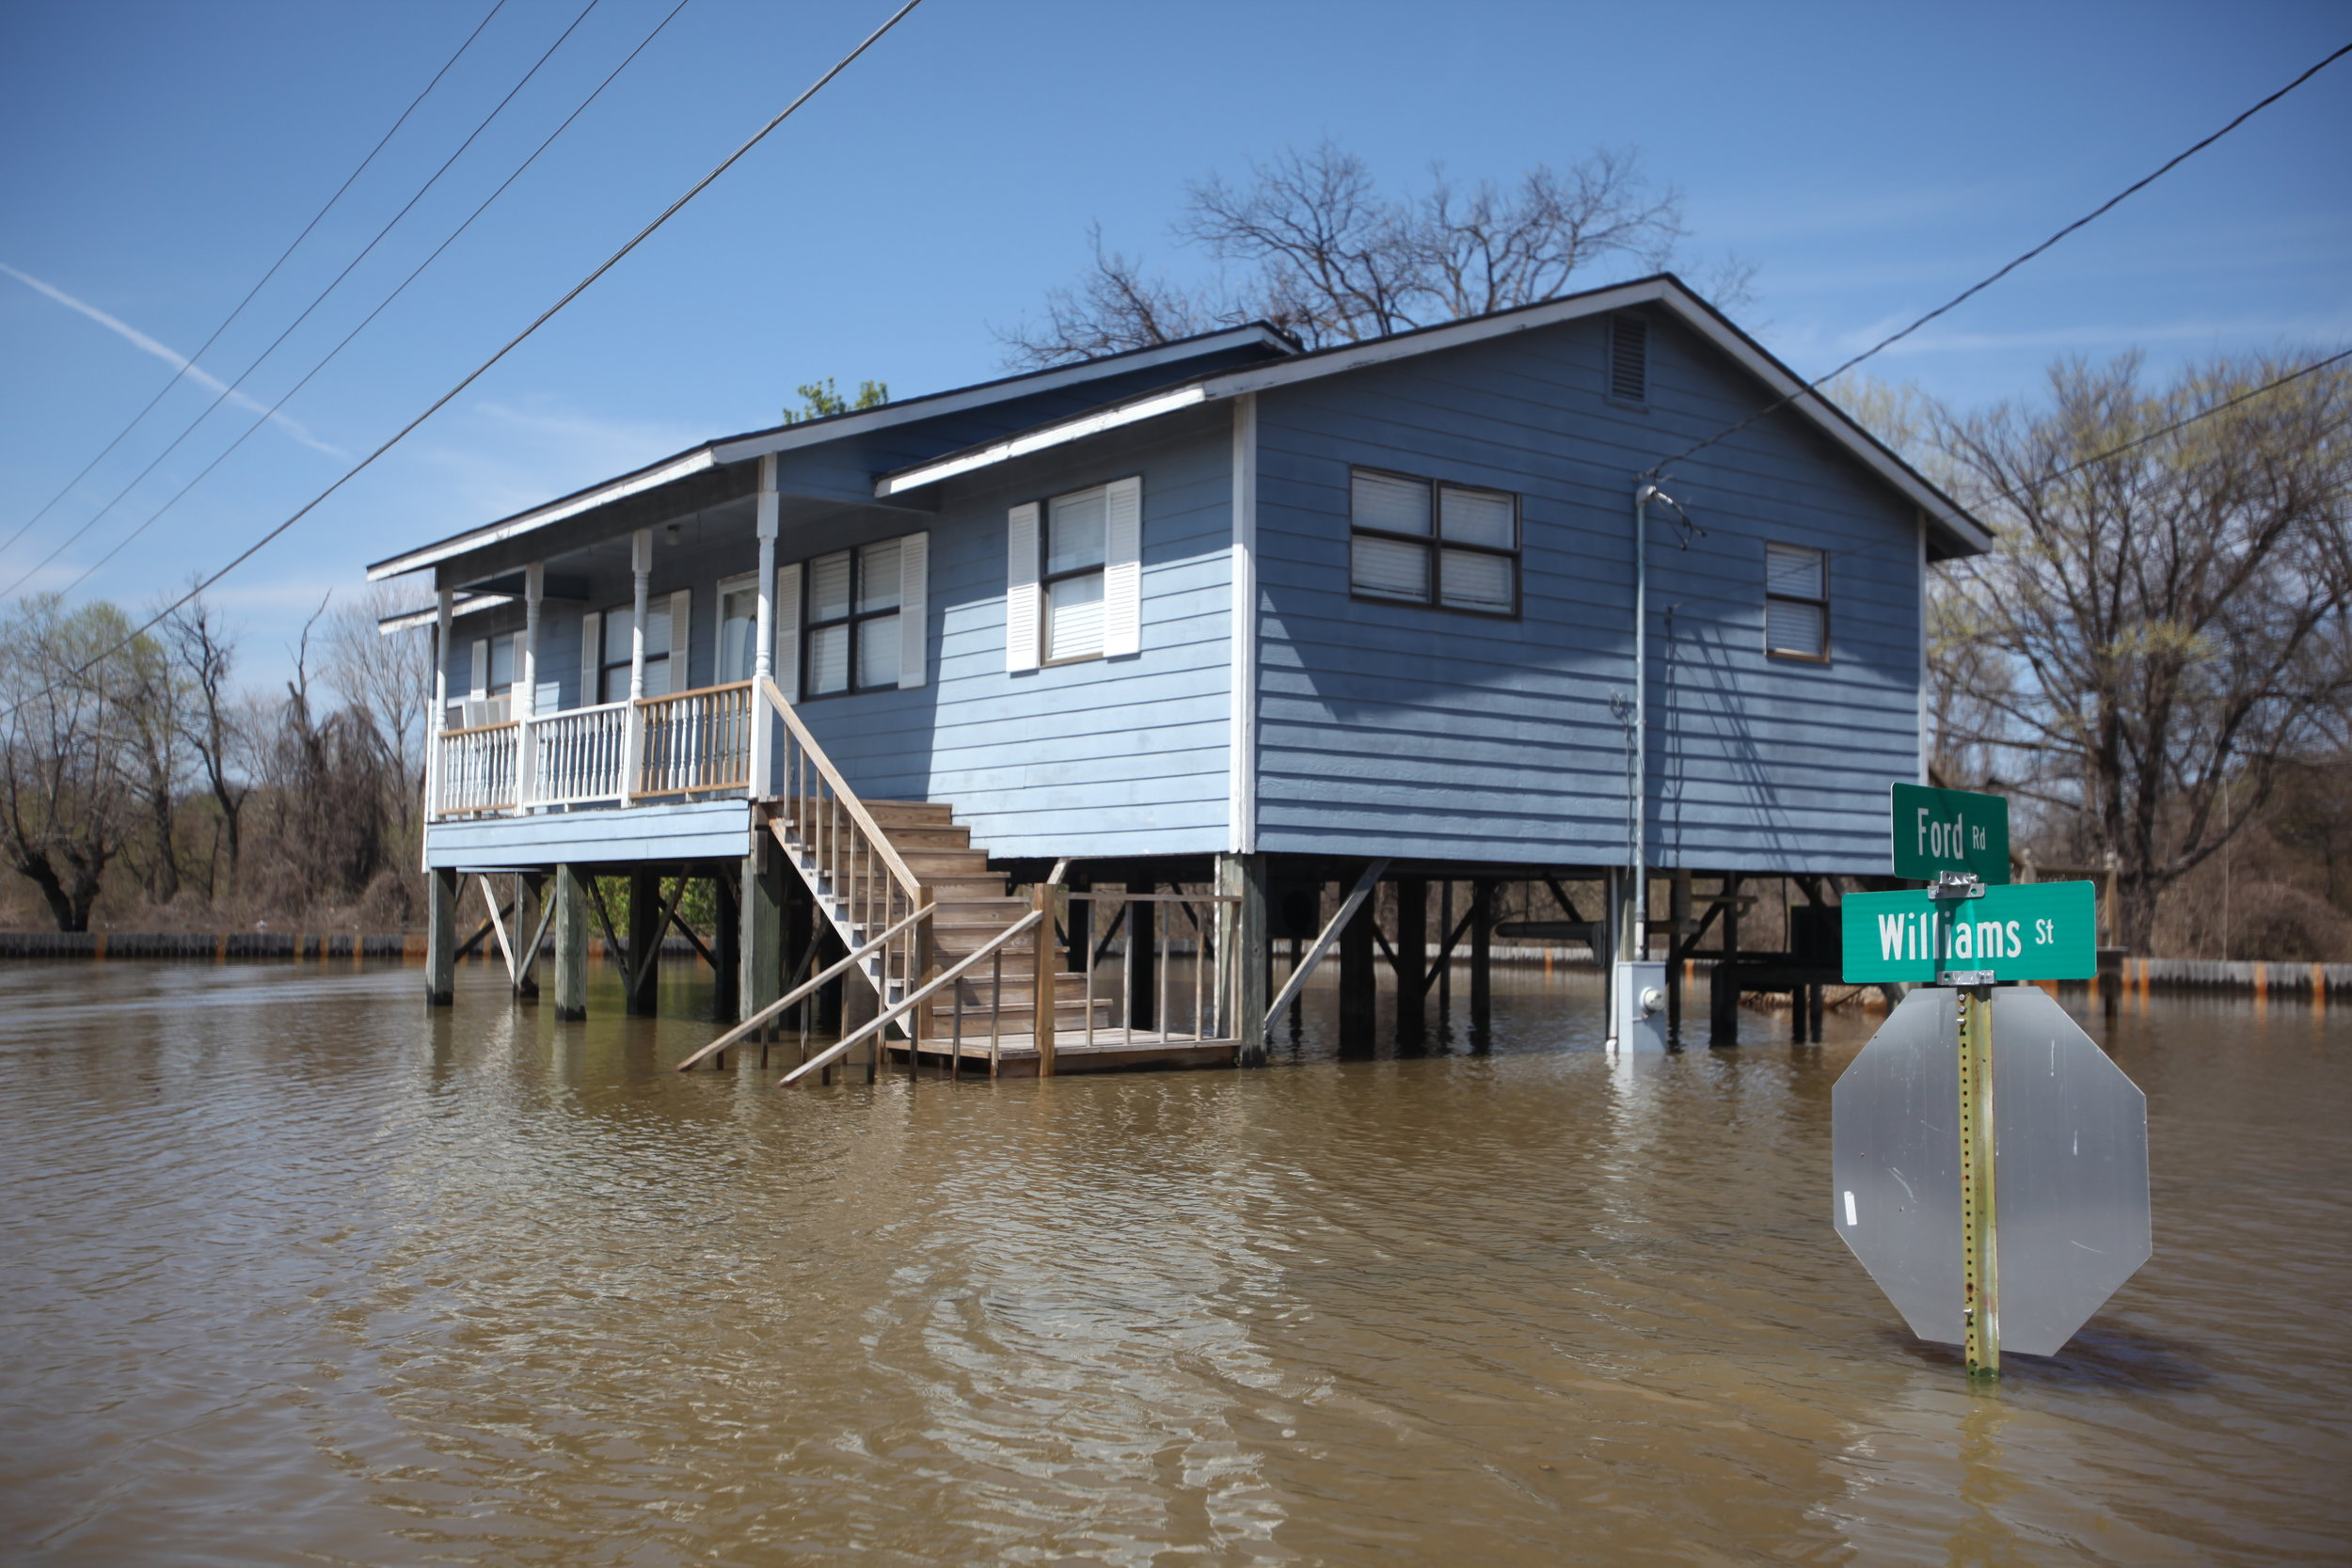 A house at the intersection of Ford Road and Williams Street is seen surrounded by floodwaters in Vicksburg, Miss., Tuesday, March 13, 2018. (Courtland Wells/The Vicksburg Post, via AP)